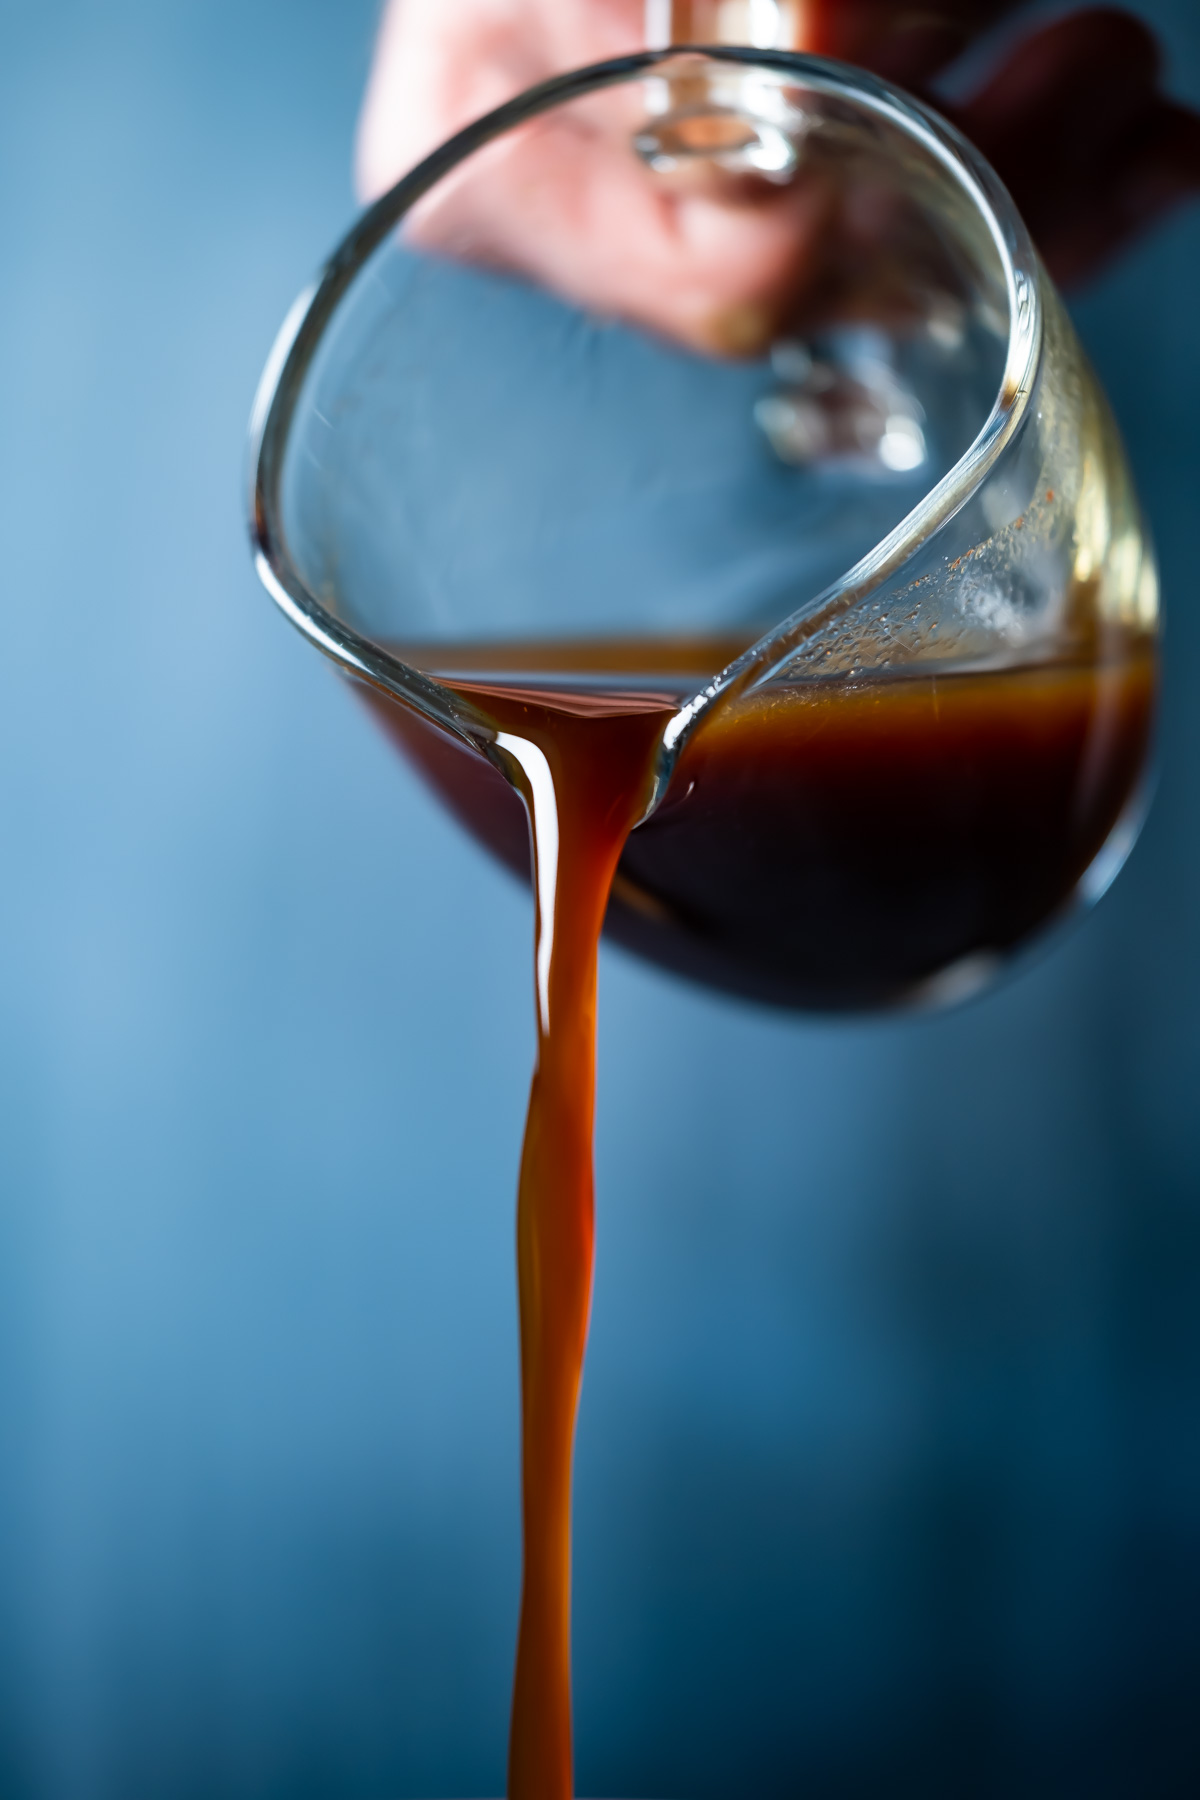 Vegan worcestershire sauce pouring from a glass jug.